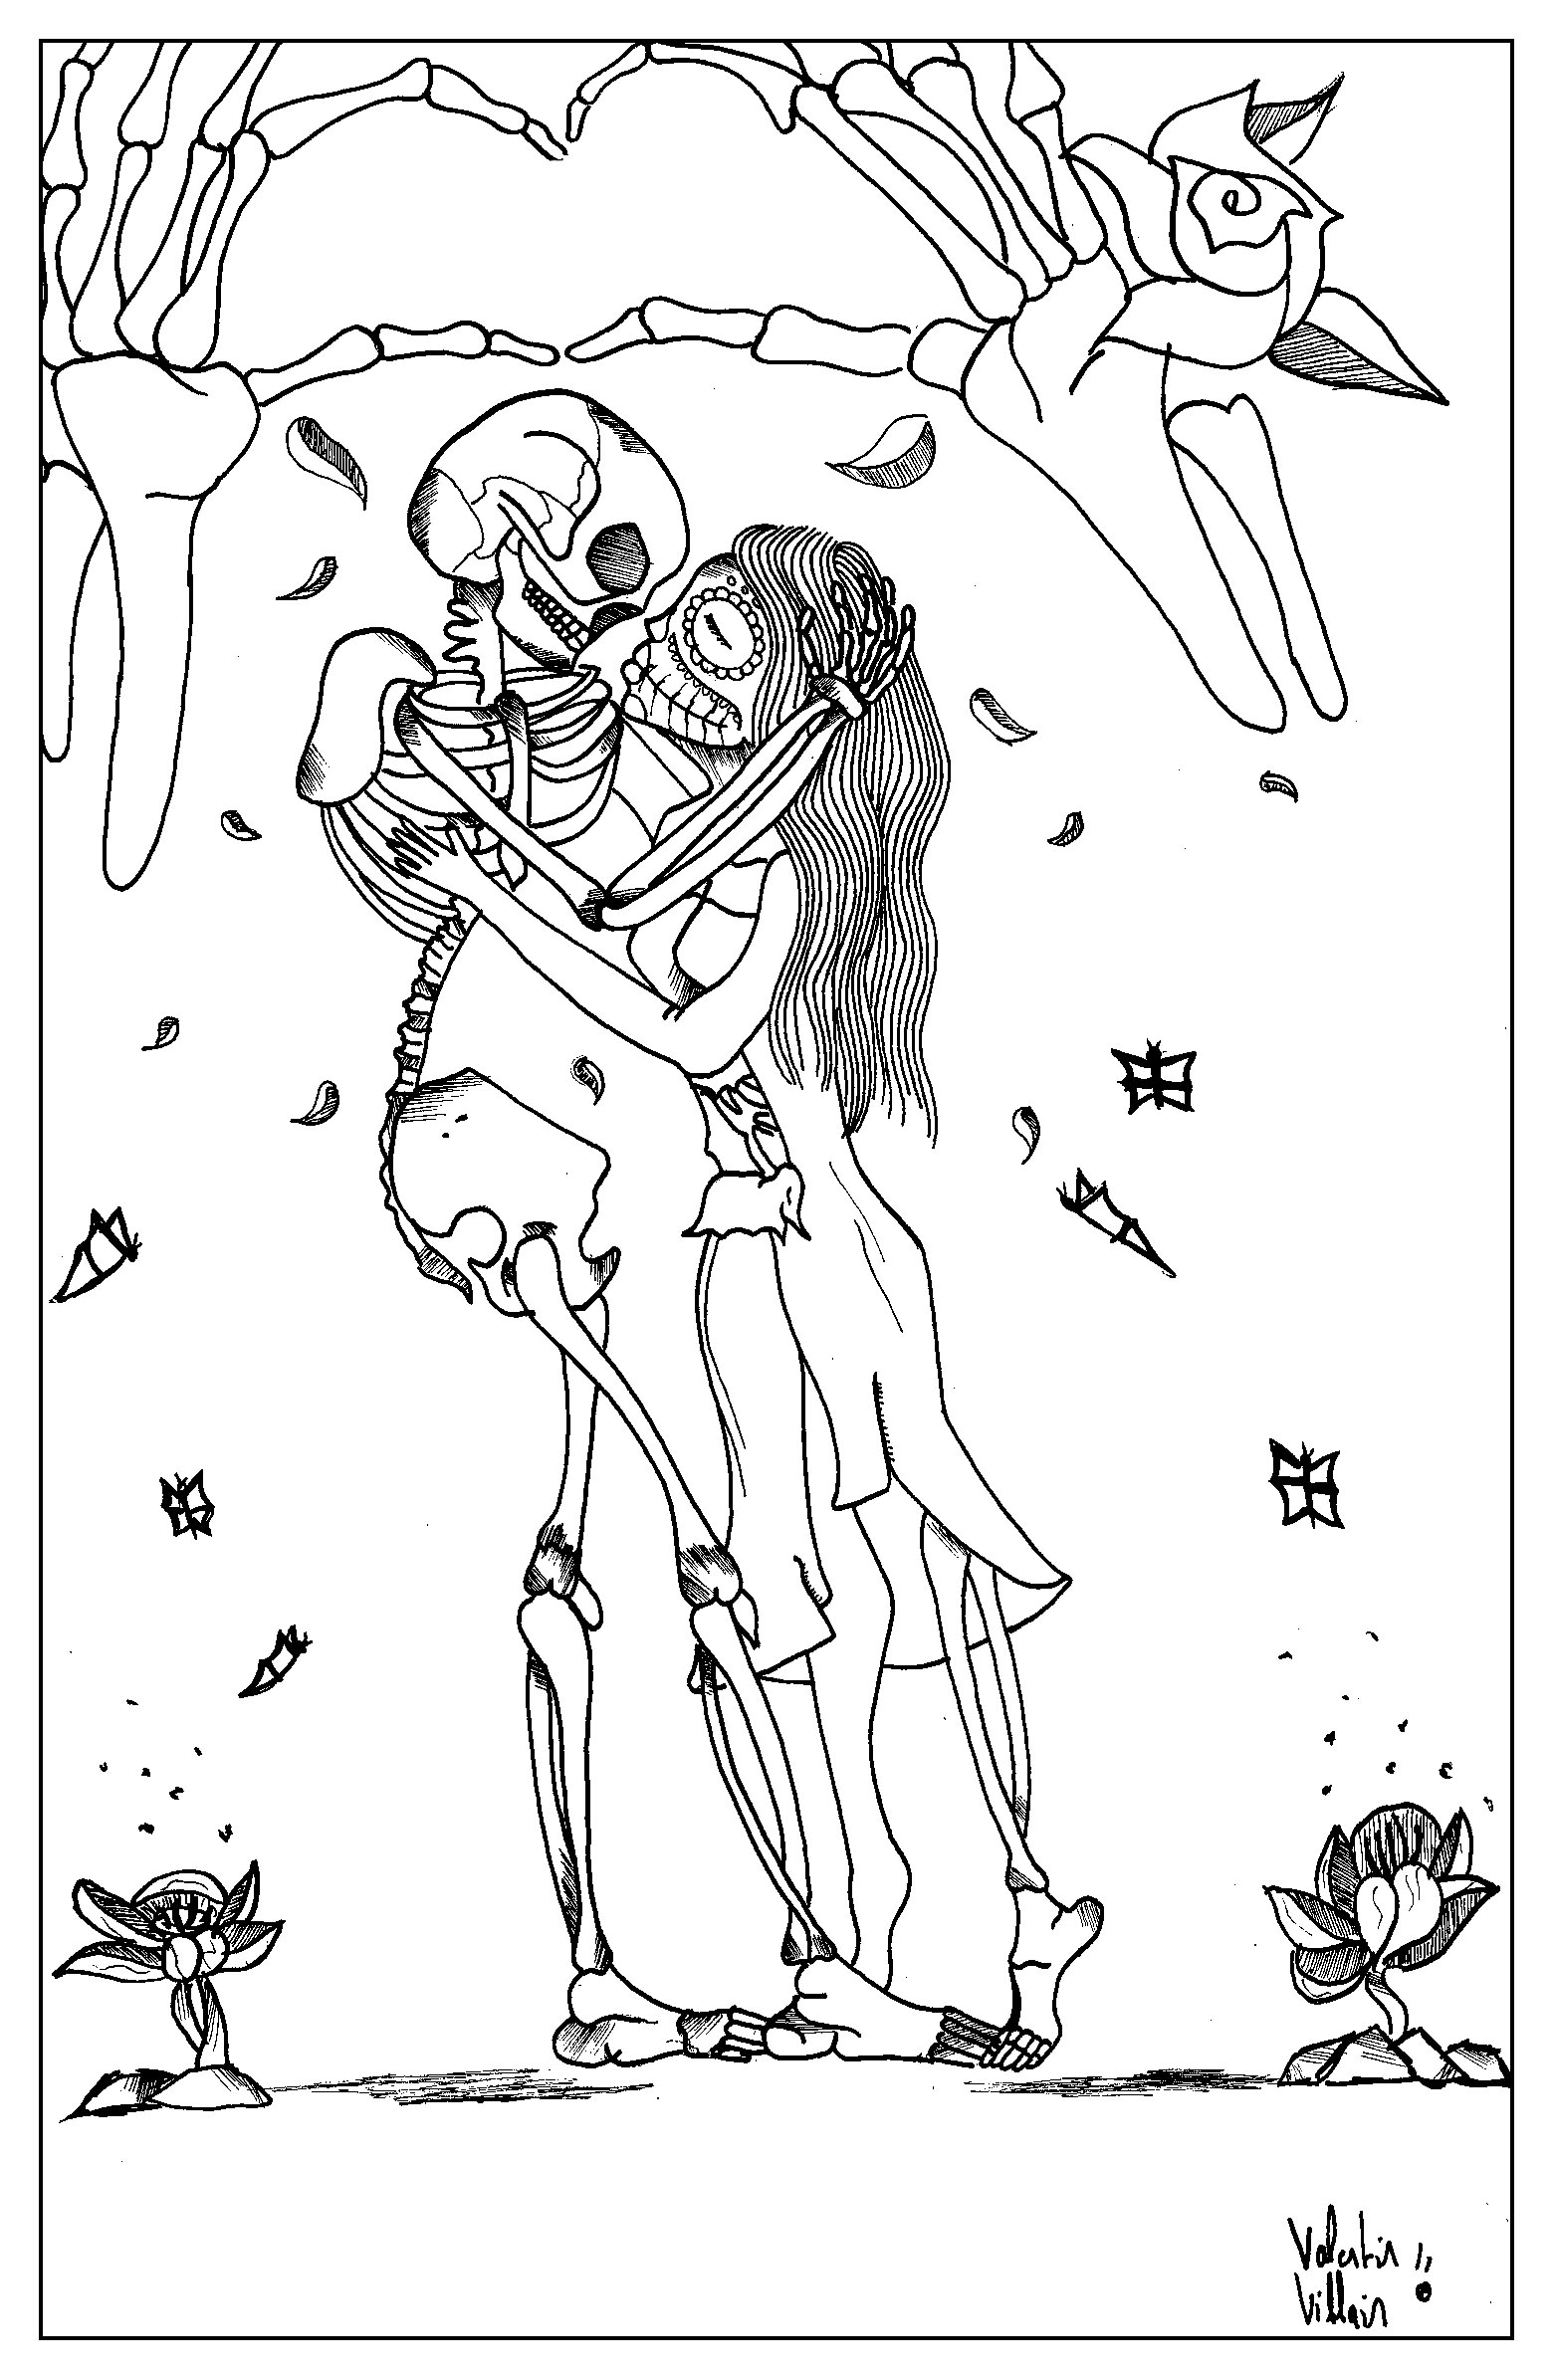 Coloring Pages St Valentine Coloring Pages valentin coloring pages for adults page adult a valentines day with very particular stylefrom the gallery eventsartist valentin